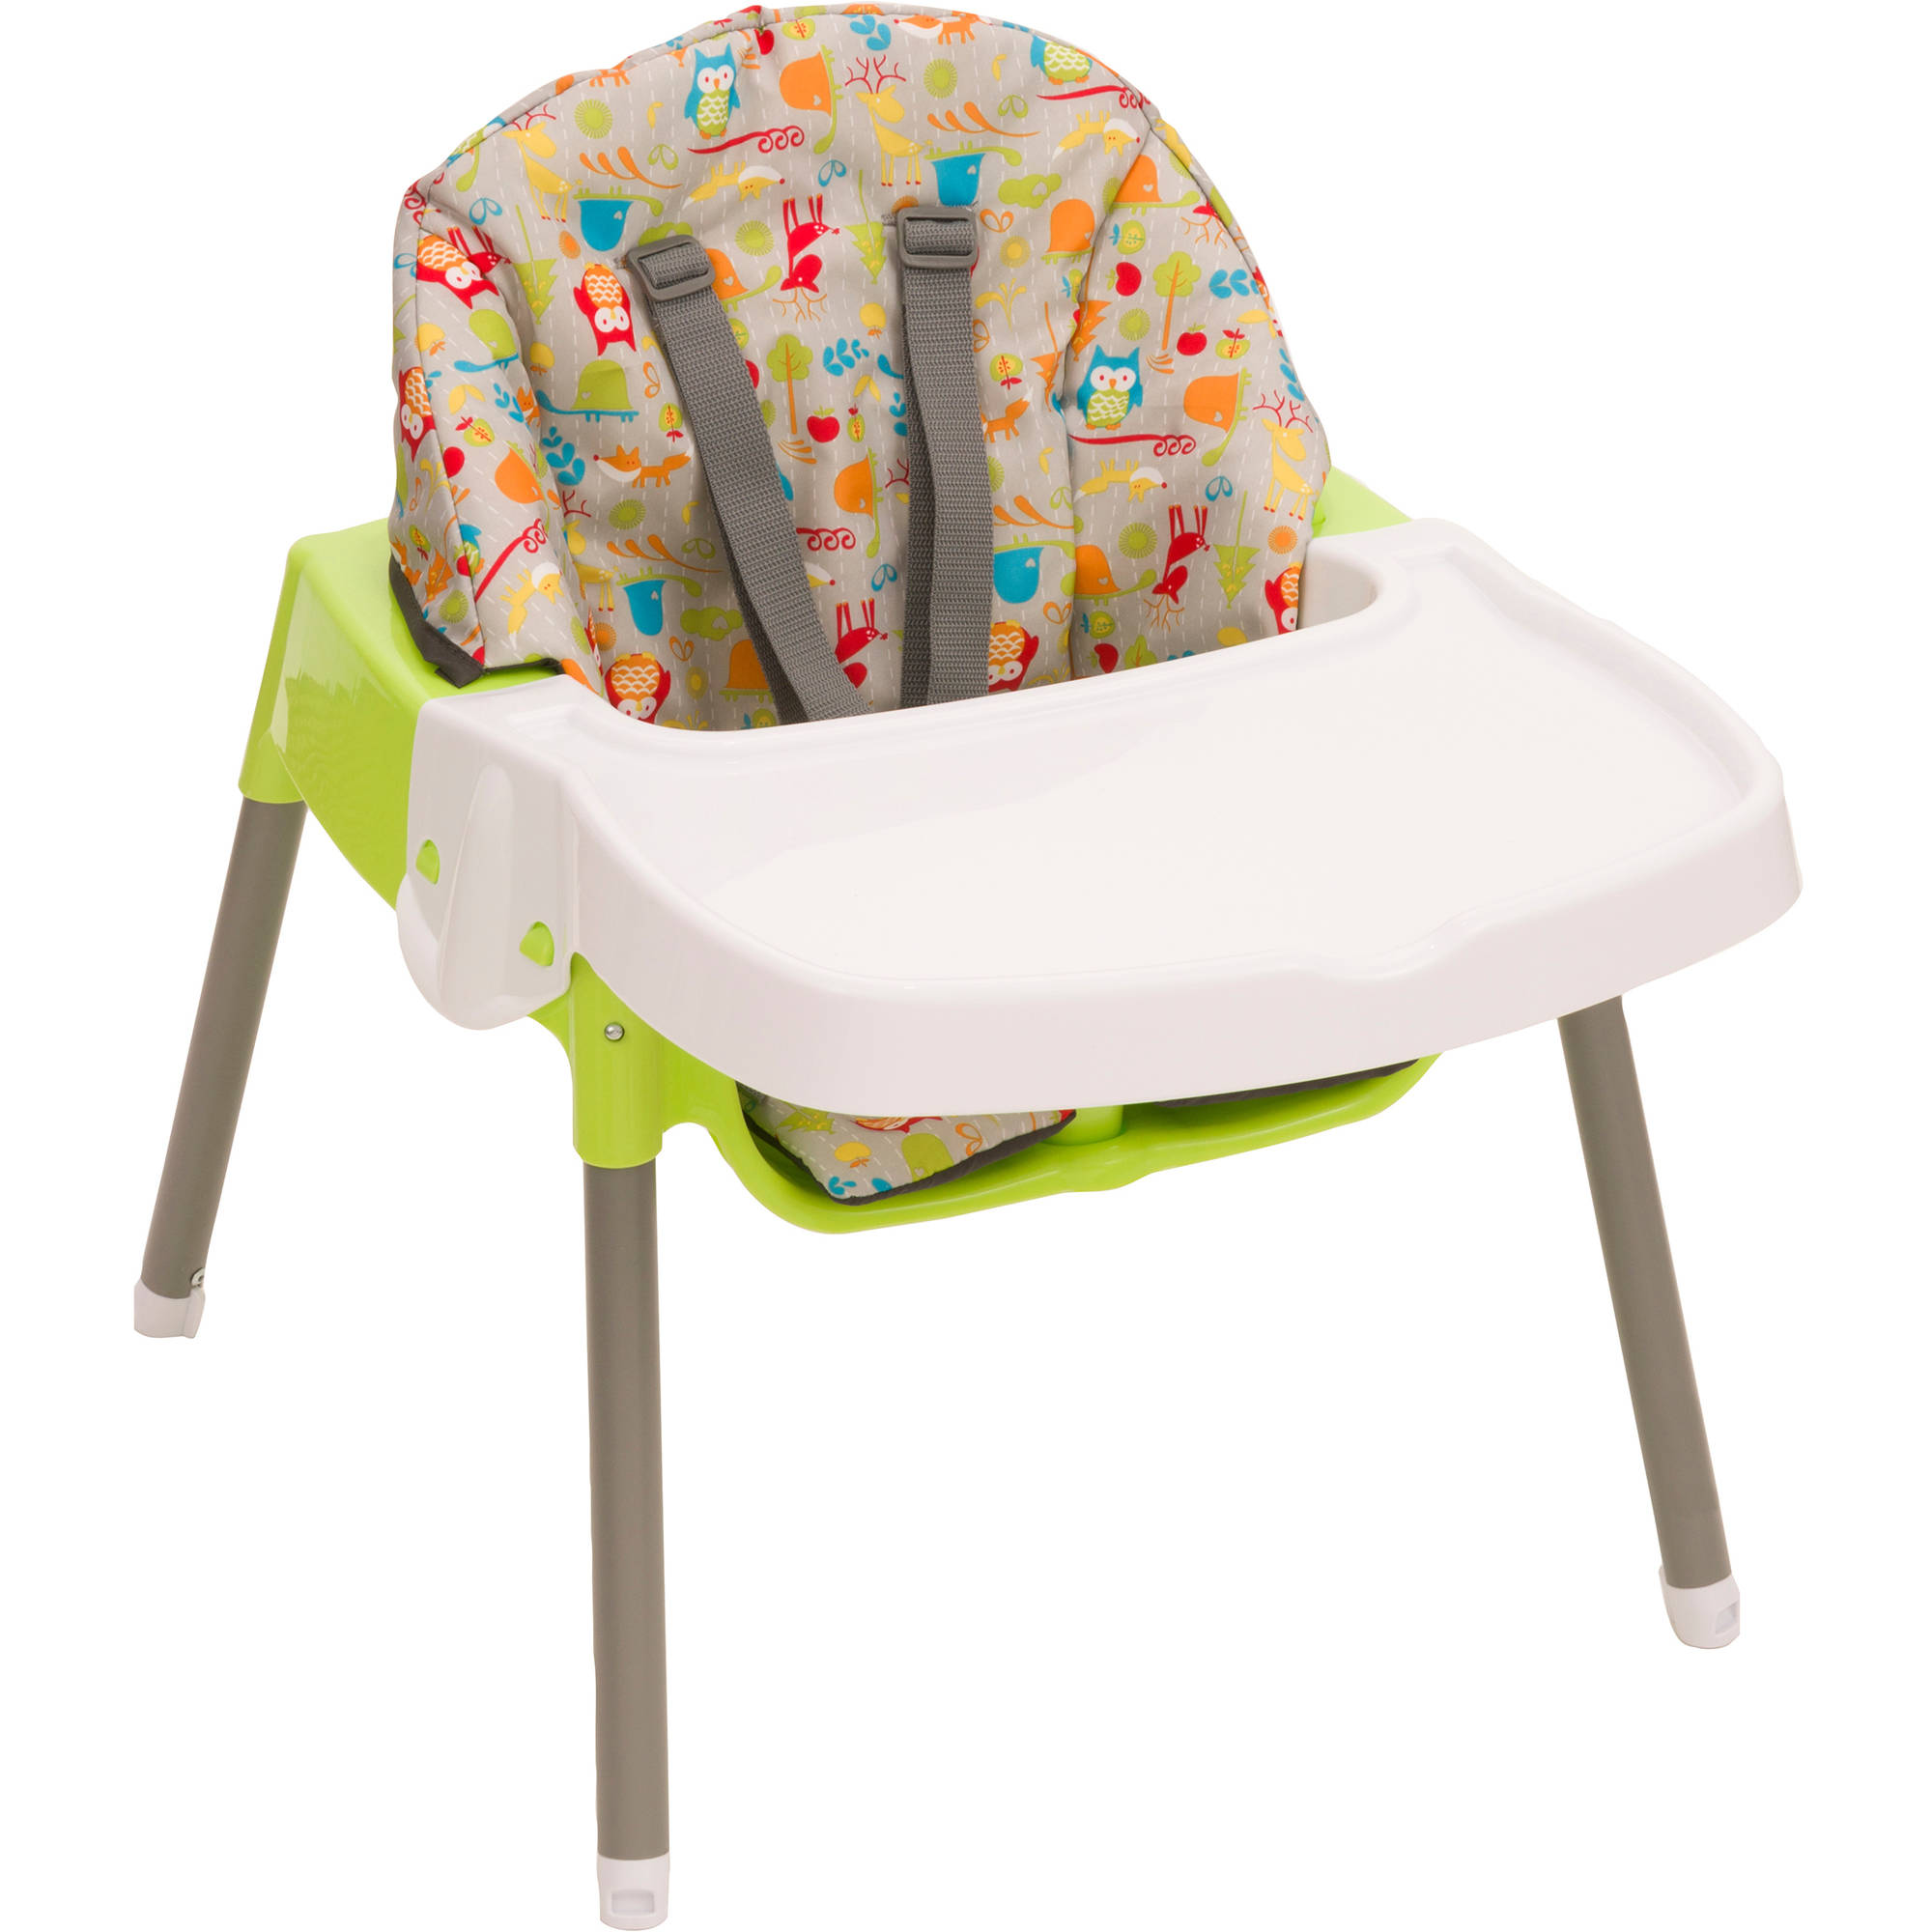 Generic Convertible 3n1 High Chair, Woodlandbudd   Walmart.com